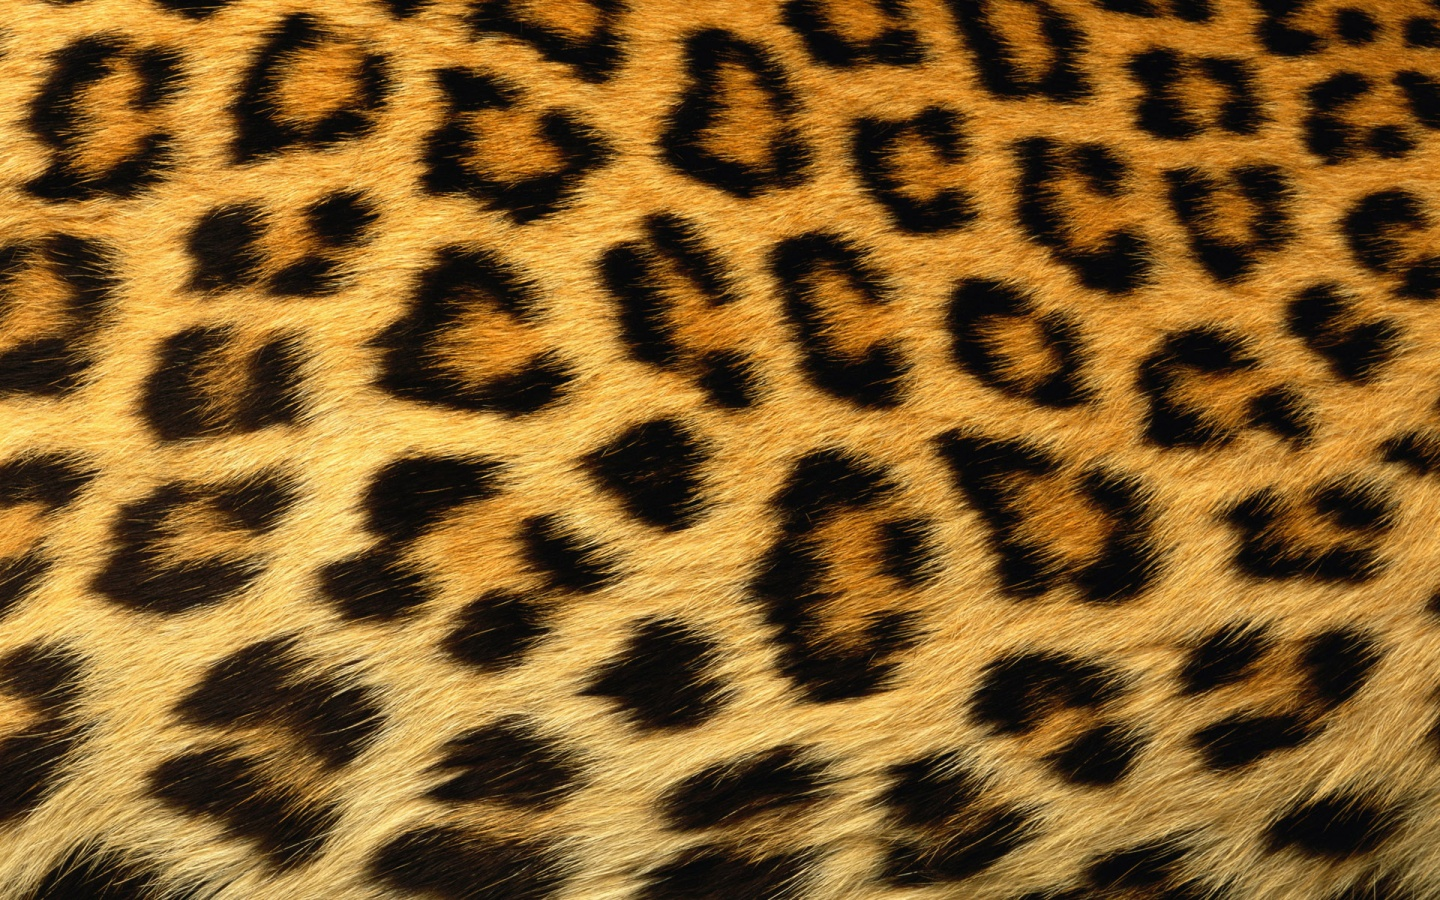 Leopard Print Background X Image. Rating: Click Stars To Rate